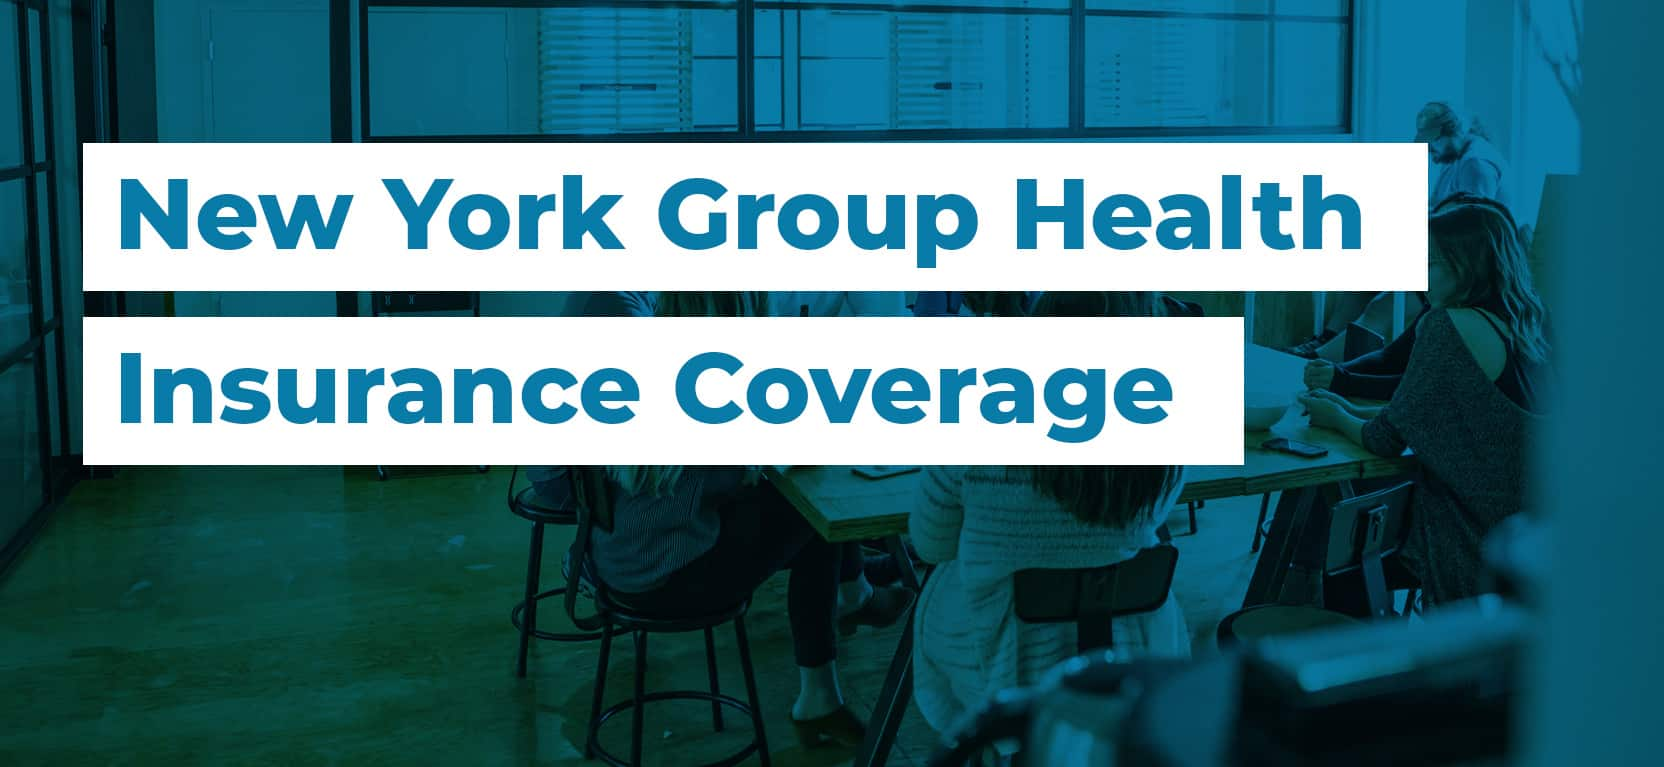 55 New York Group Health Insurance Coverage2